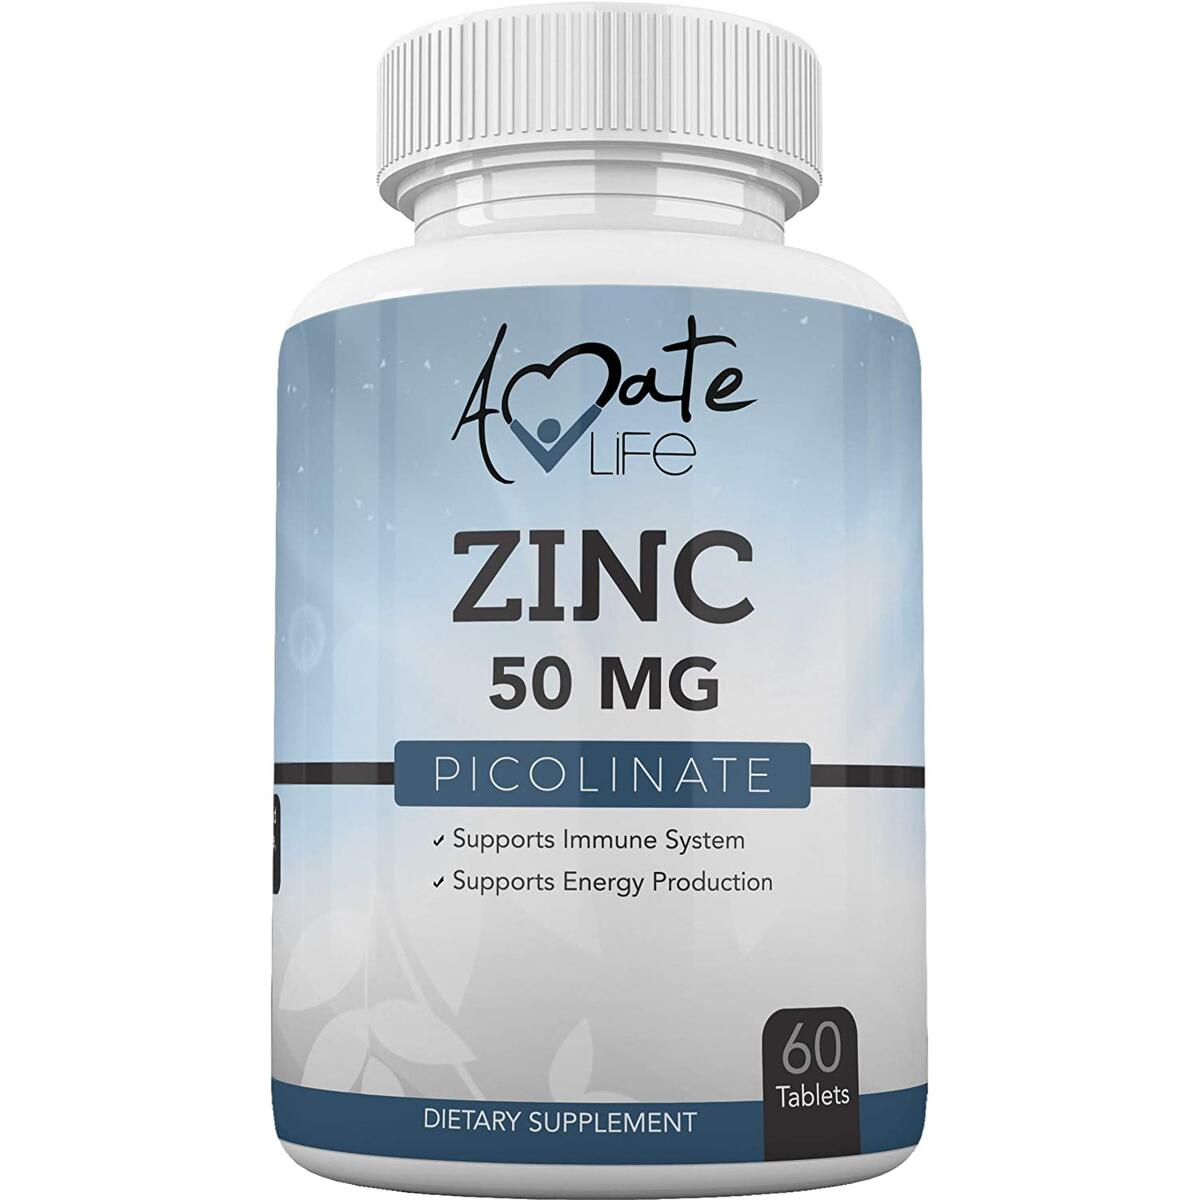 Zinc Picolinate 50mg Tablets Maximum Strength Zinc Supplement for Immune System & Energy Levels Gluten Free, Vegetarian Friendly for Men and Women Non-GMO Formula 60 Count Made in USA by Amate Life